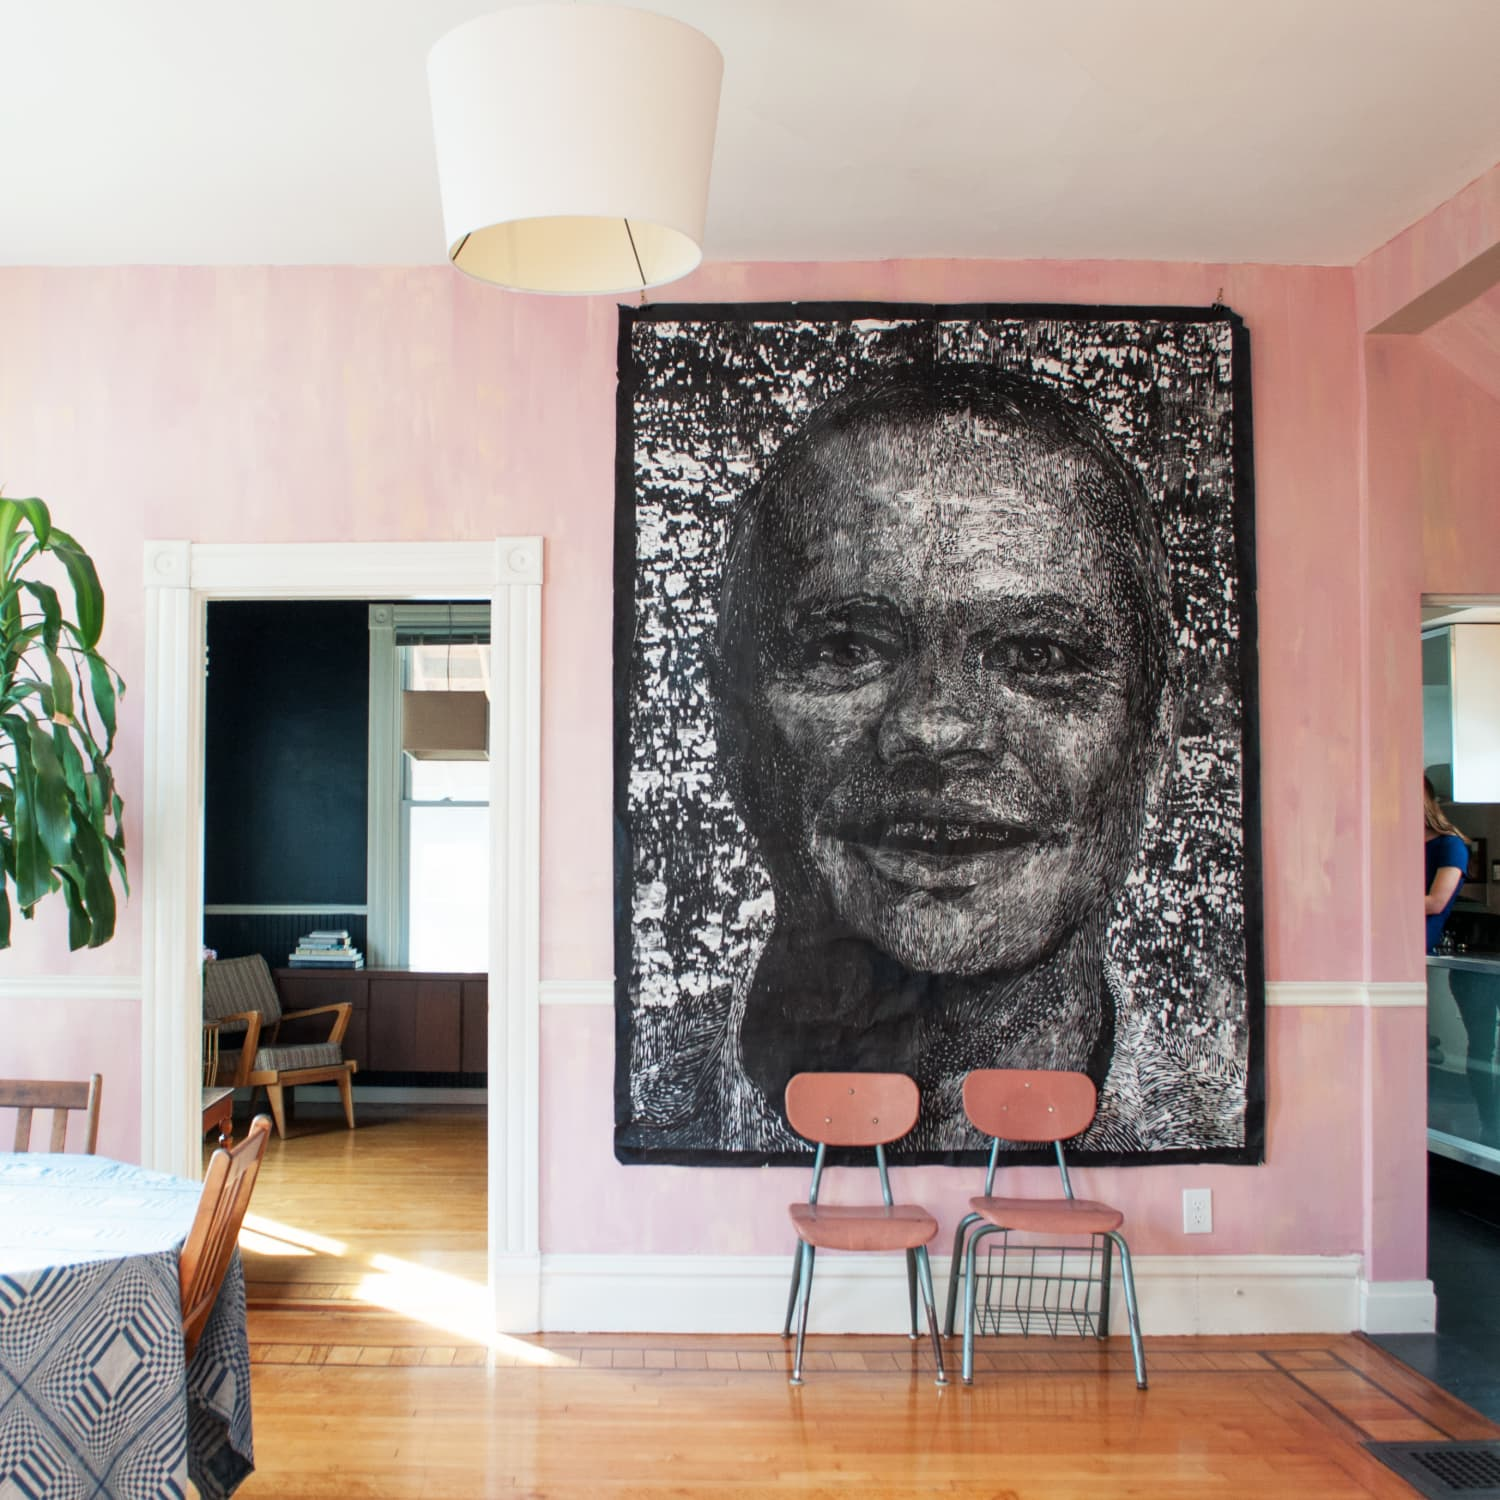 Best Large Wall Art 2021 — Where to Buy Oversized Art Prints | Apartment  Therapy